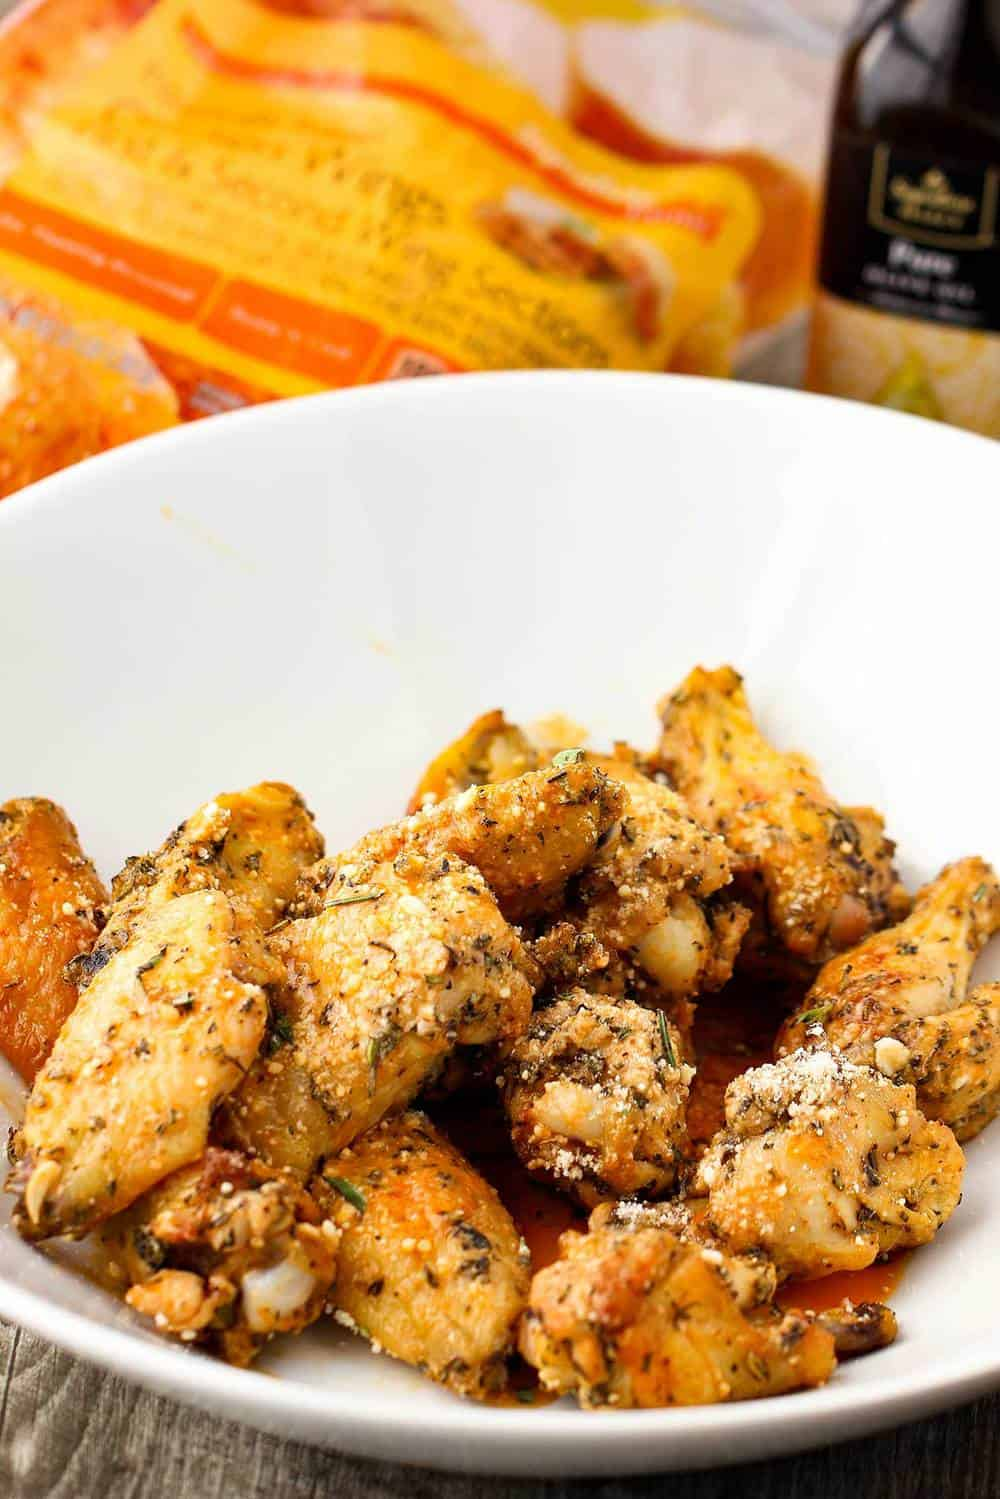 Parmesan and Garlic chicken wings recipe